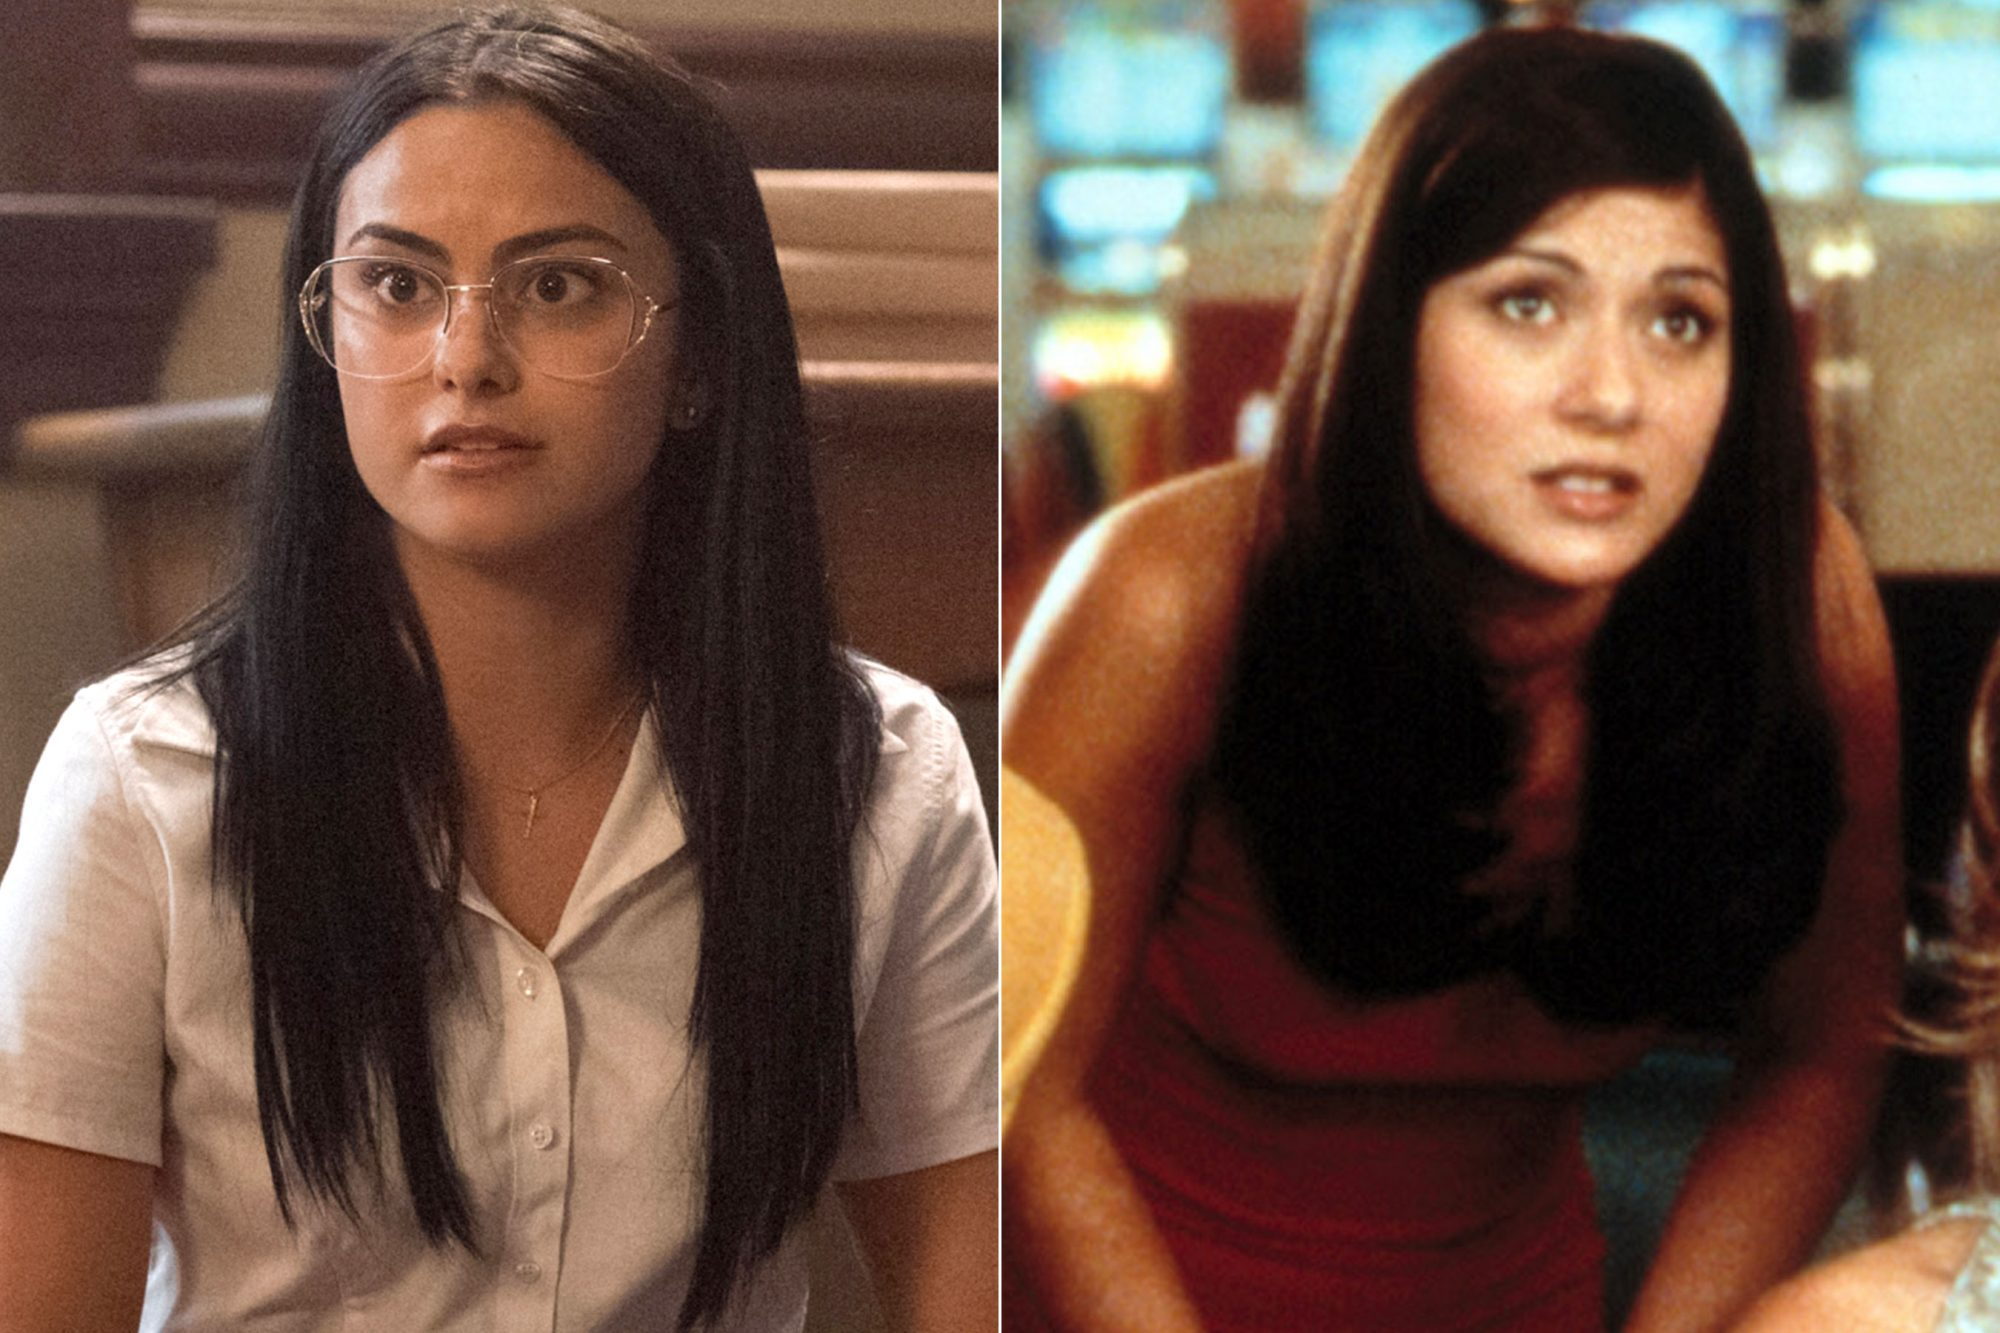 Camila Mendes as Hermione Lodge vs. Marisol Nichols in Vegas Vacation